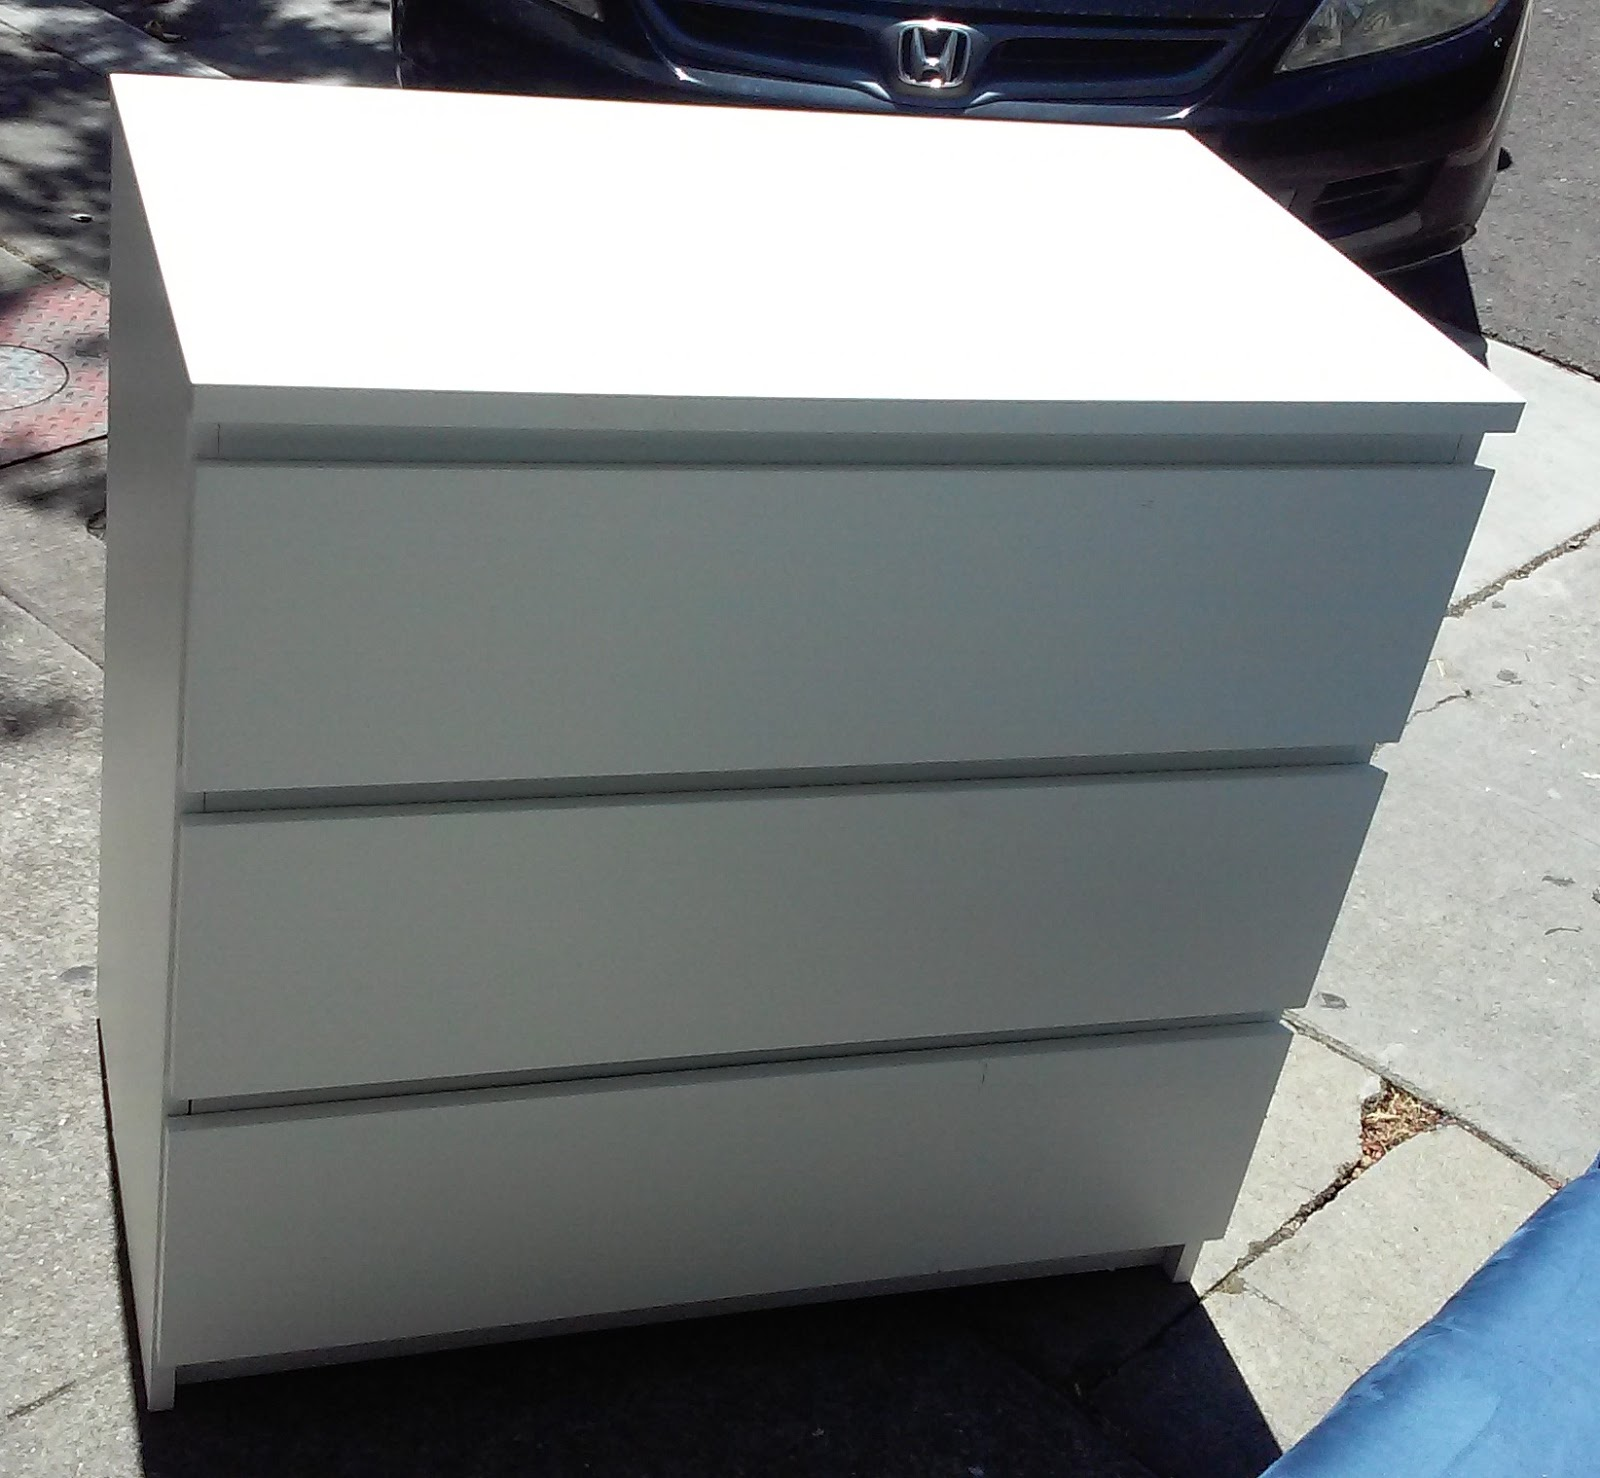 #2F6E9C UHURU FURNITURE & COLLECTIBLES: SOLD #1334 IKEA 3 Drawer  with 1600x1478 px of Brand New Ikea 3 Drawer Dresser White 14781600 pic @ avoidforclosure.info